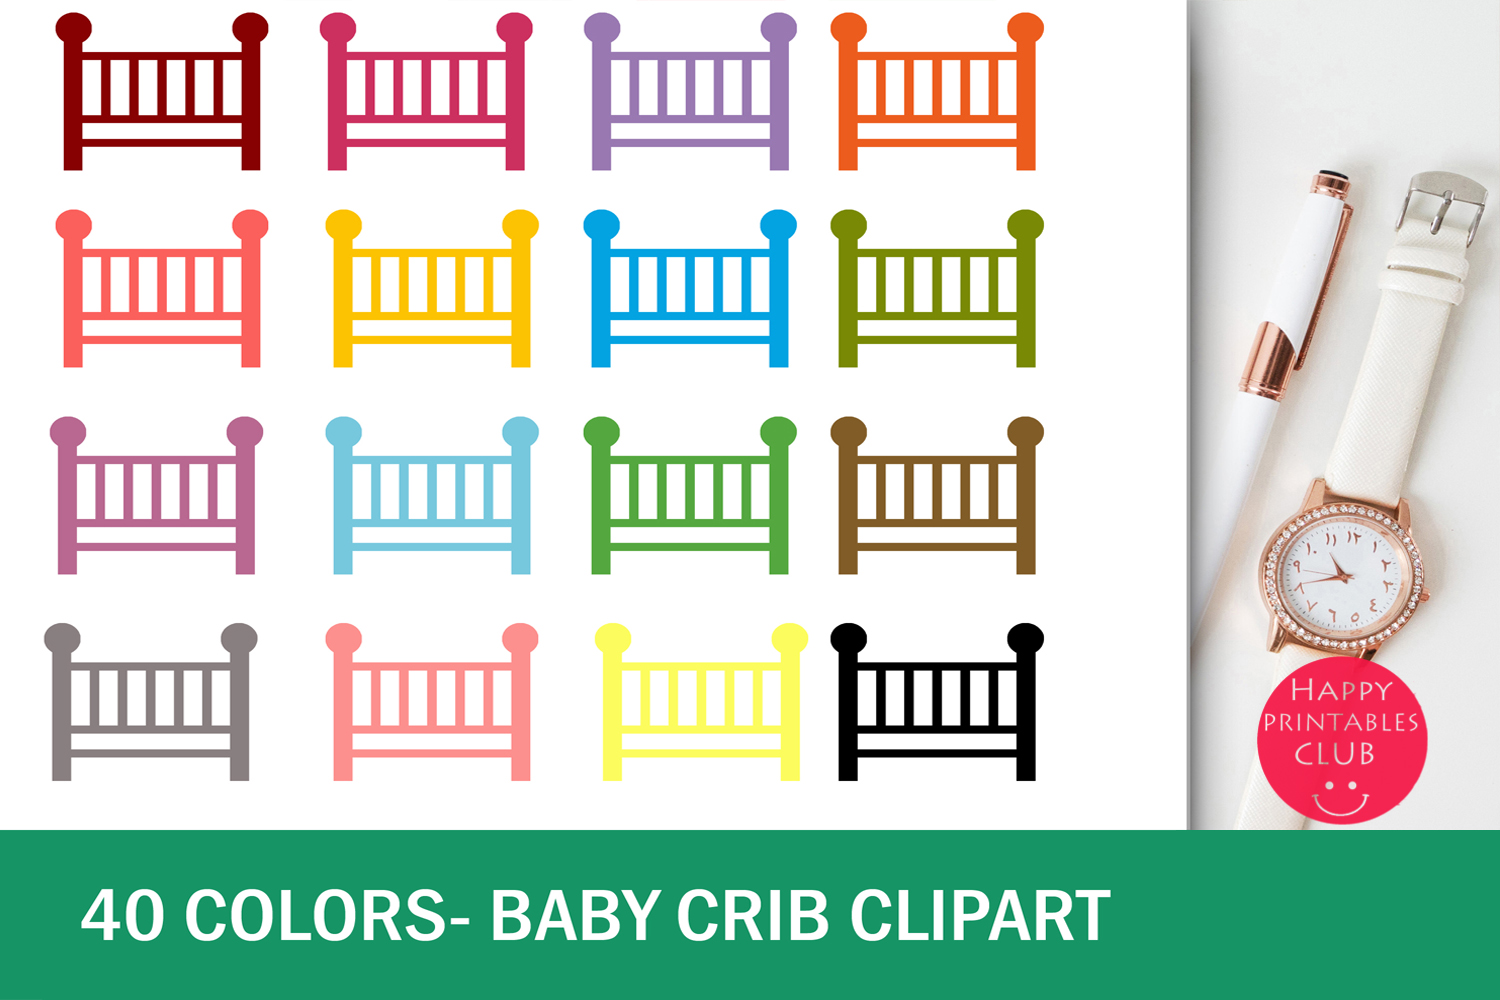 hight resolution of 40 baby crib clipart colorful baby crib transparent images example image 1